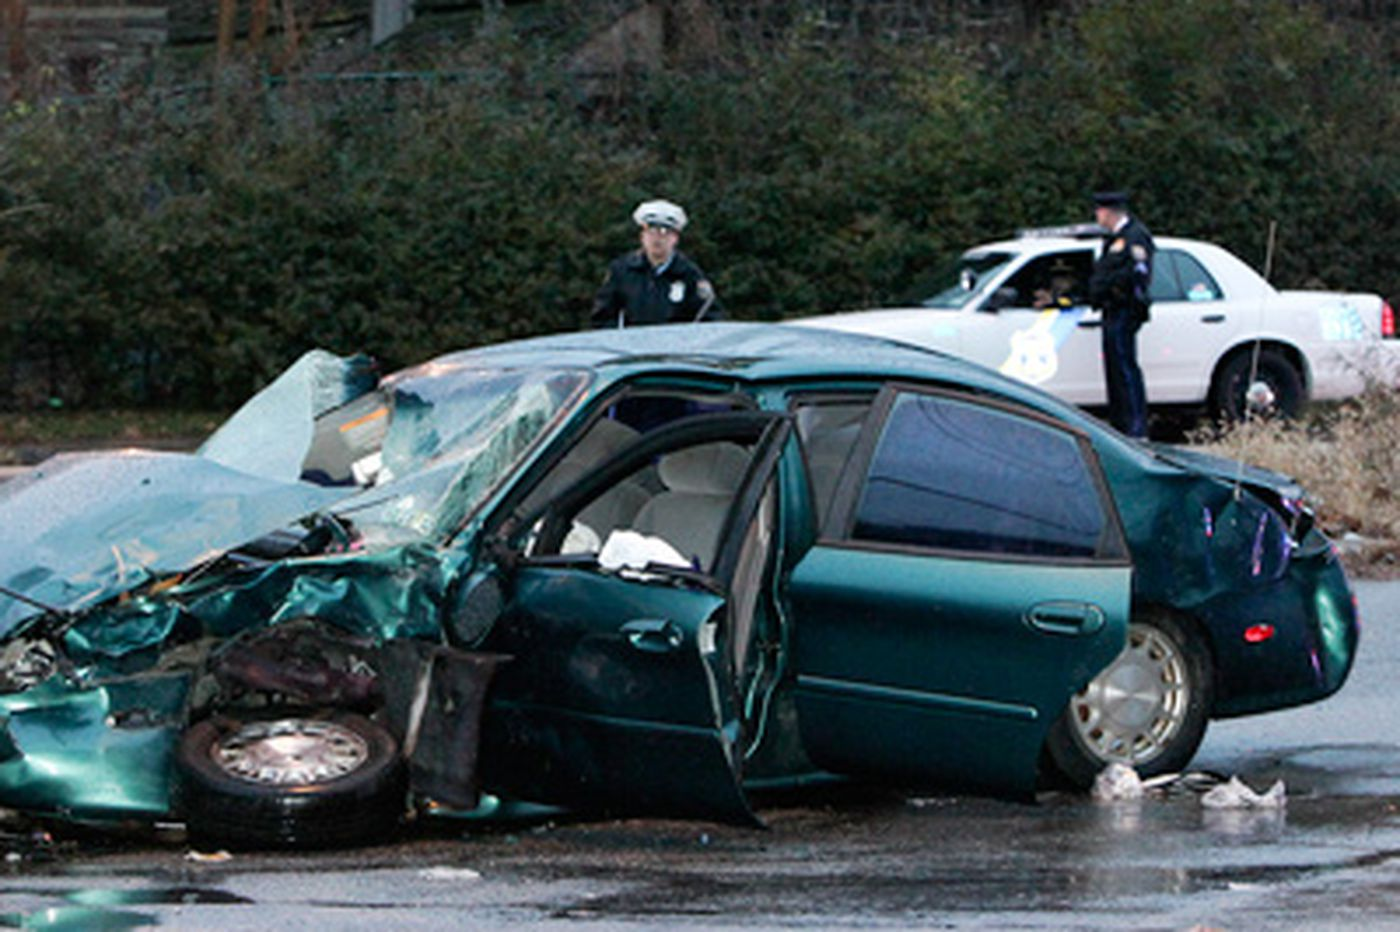 Three undercover police officers injured in car accident in Logan